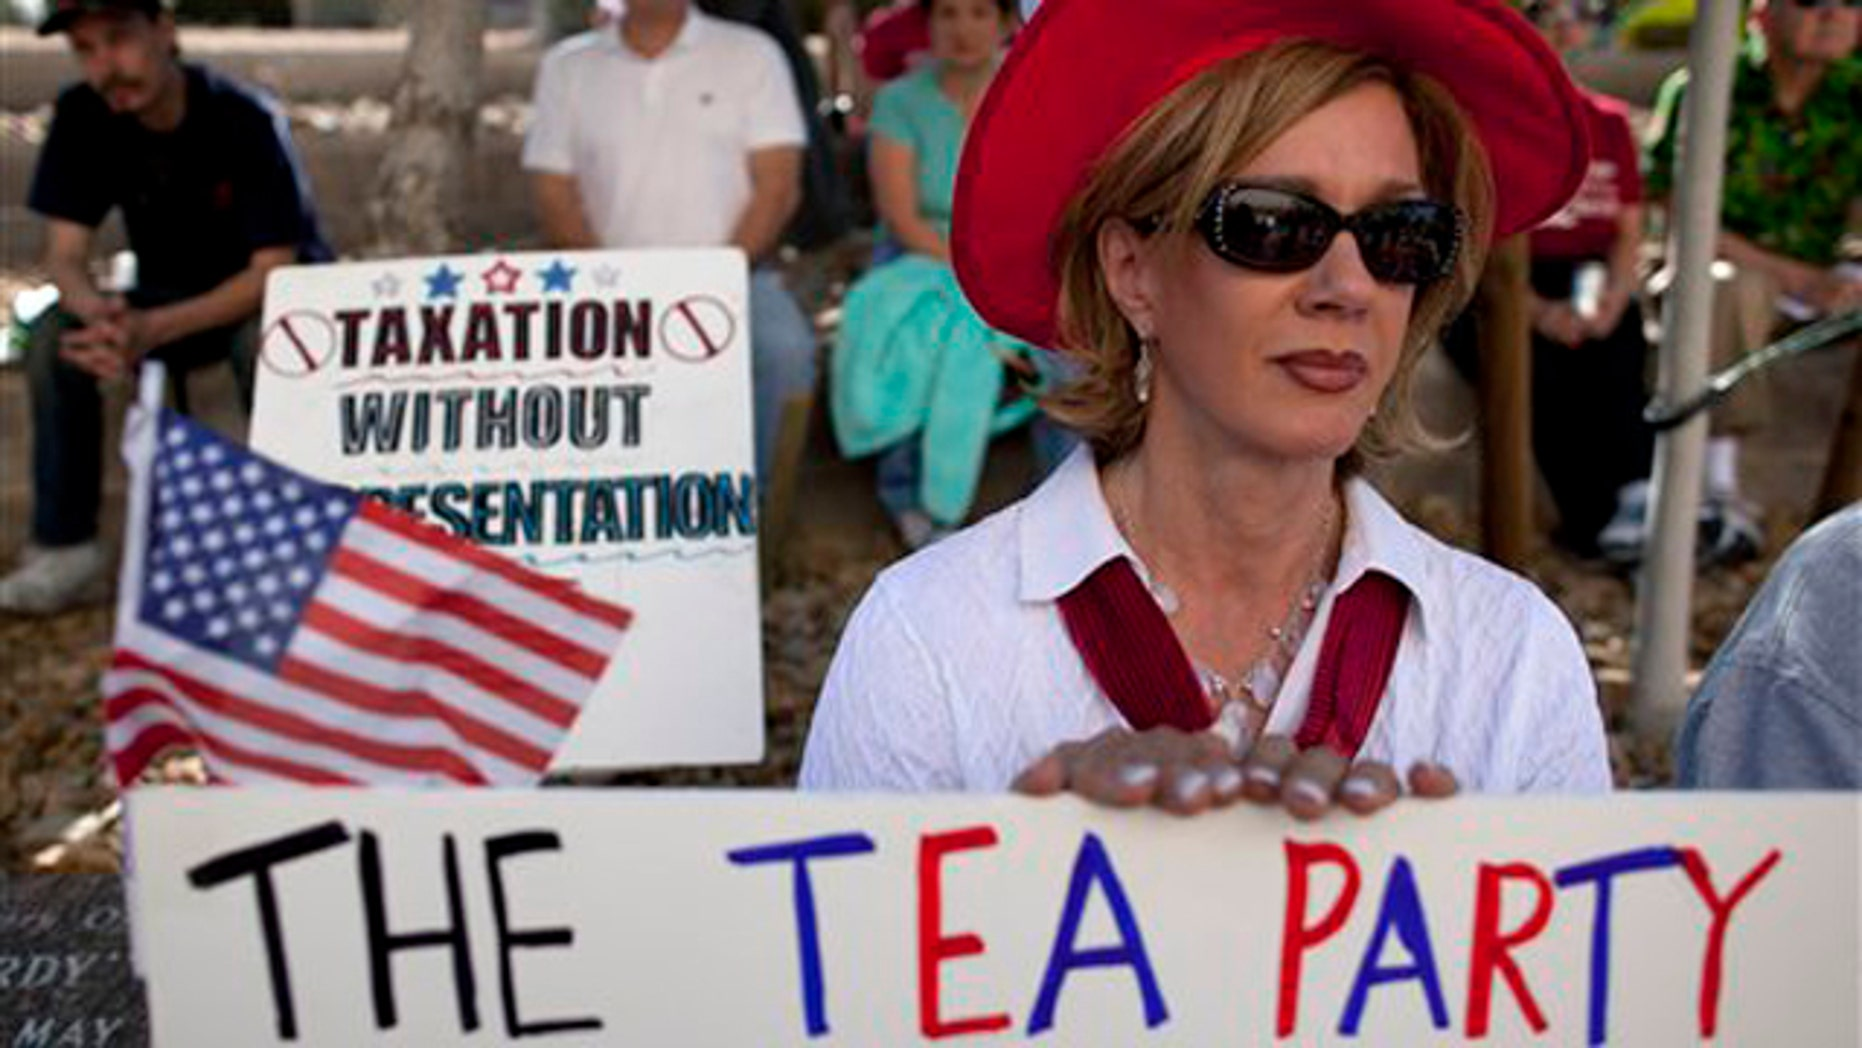 In this April 15 file photo, an activist in Las Vegas listens to speakers during a Tea Party rally.